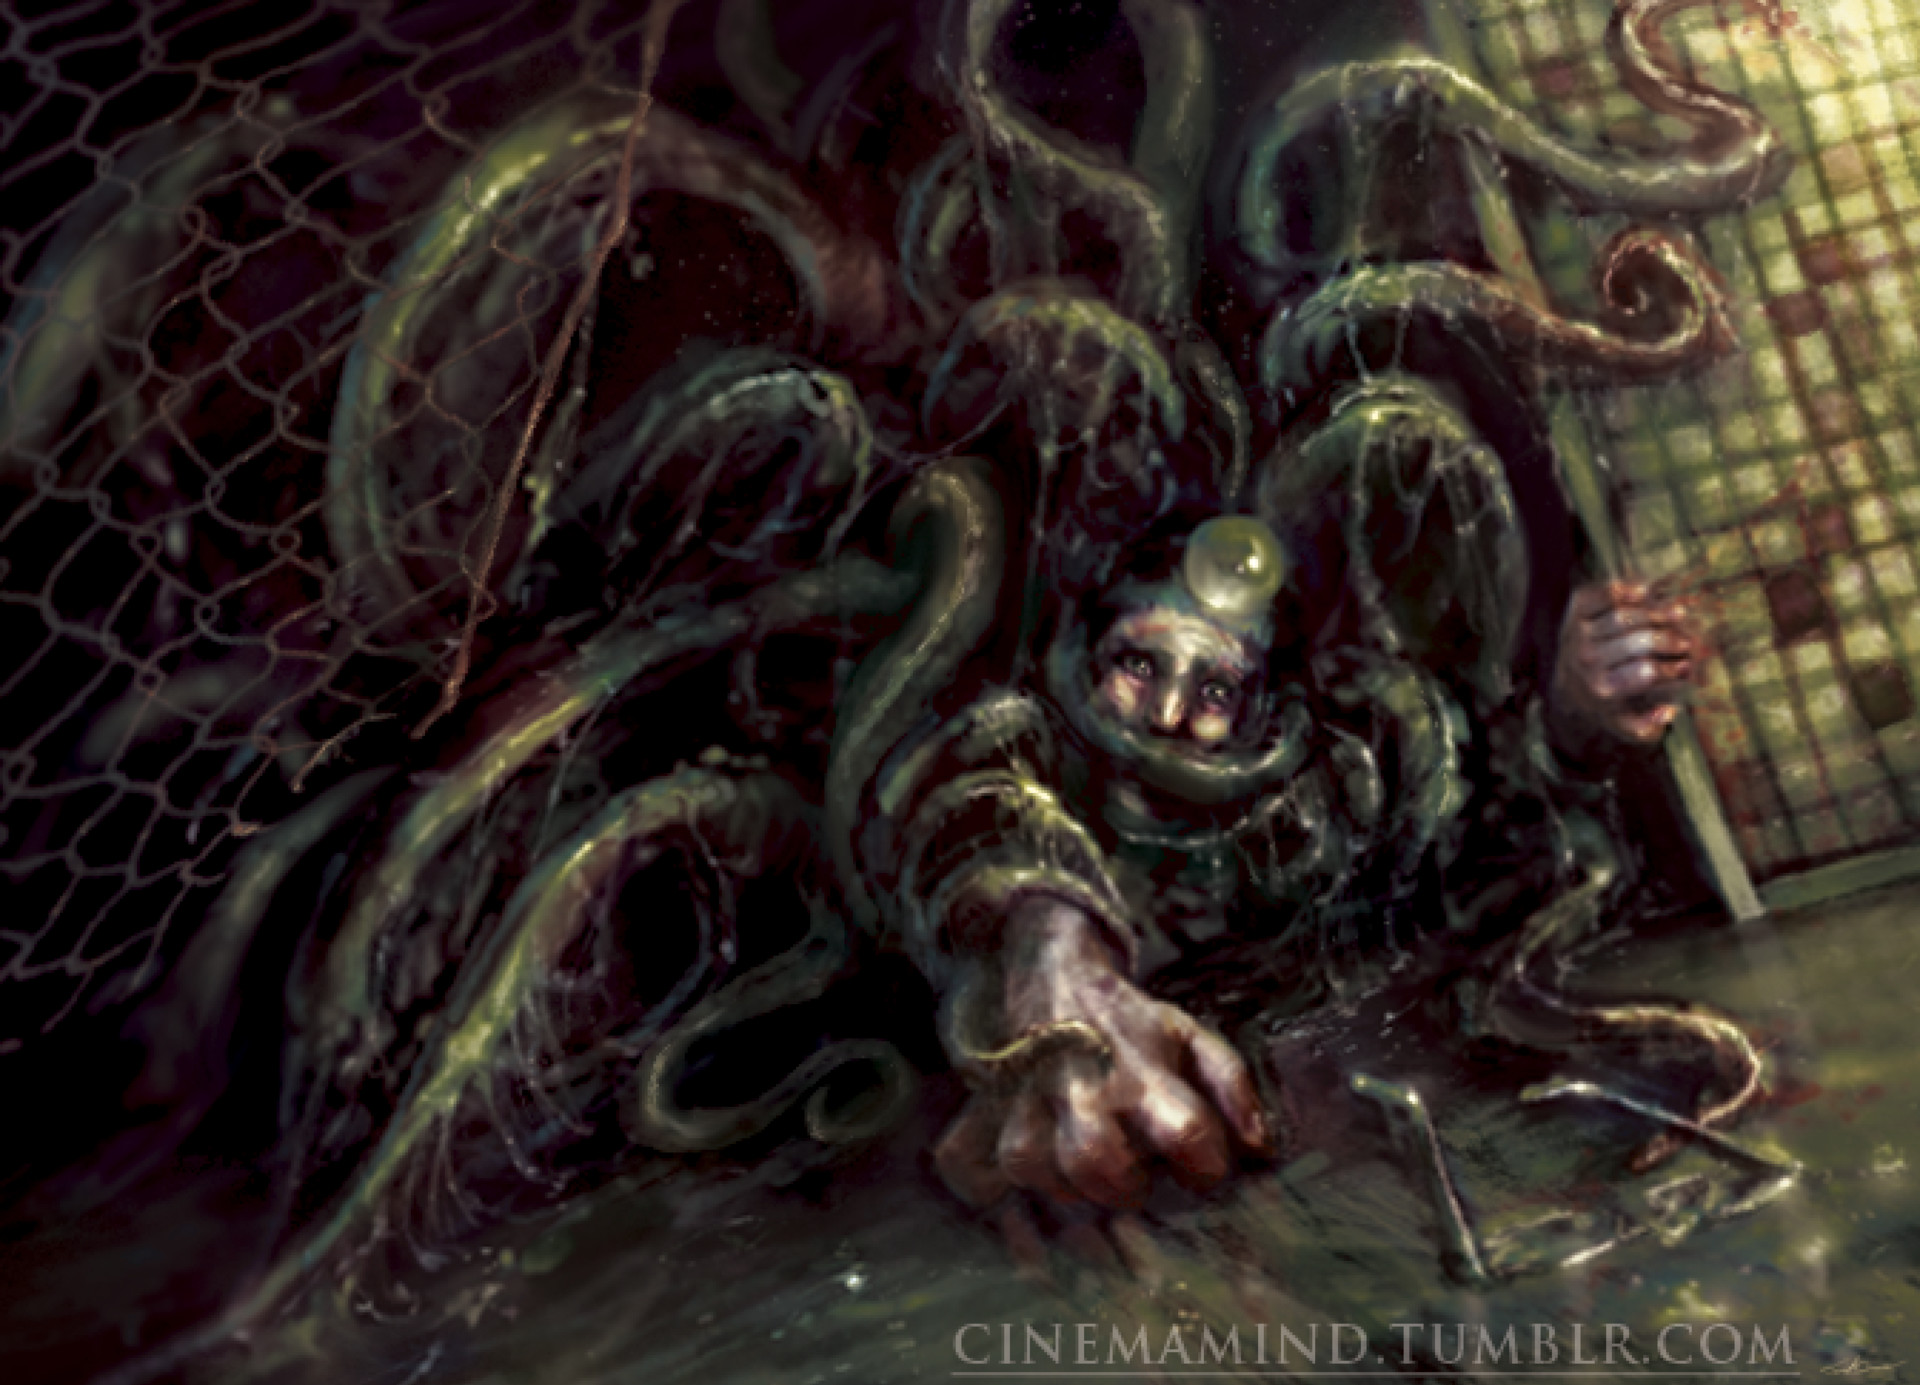 Grasping Tentacles